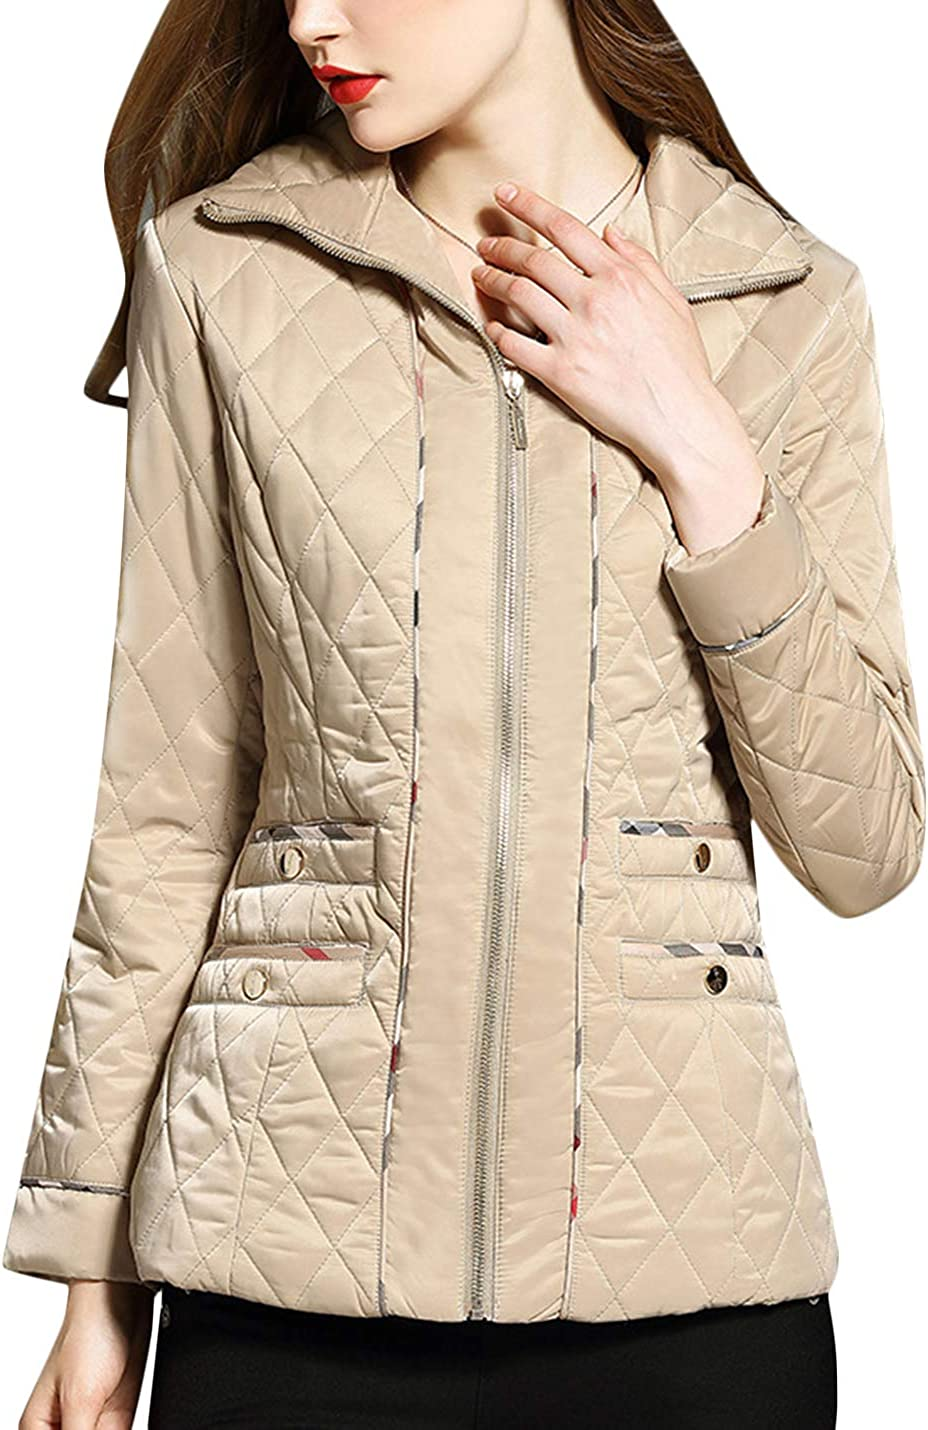 Uaneo Women's Winter Diamond gift Quilted Jacket Warm Outwear Coats Sale SALE% OFF